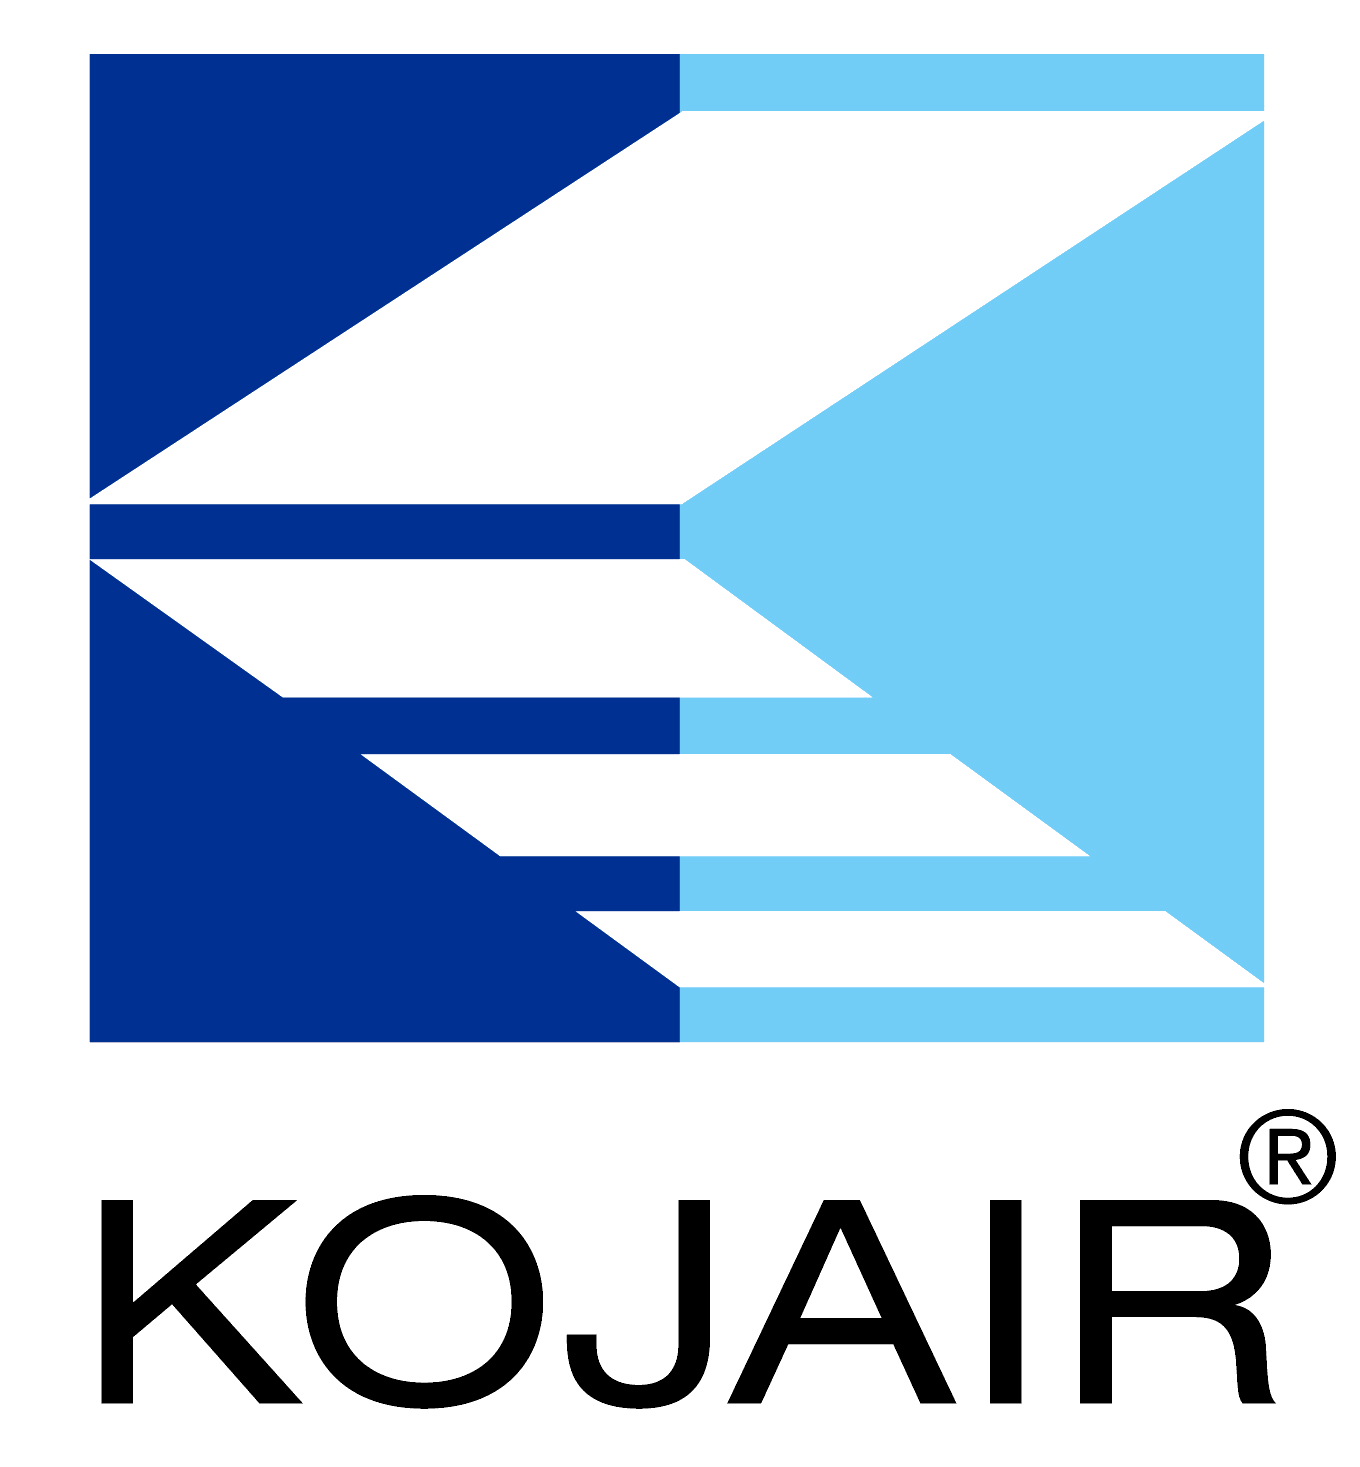 Kojair Tech Oy